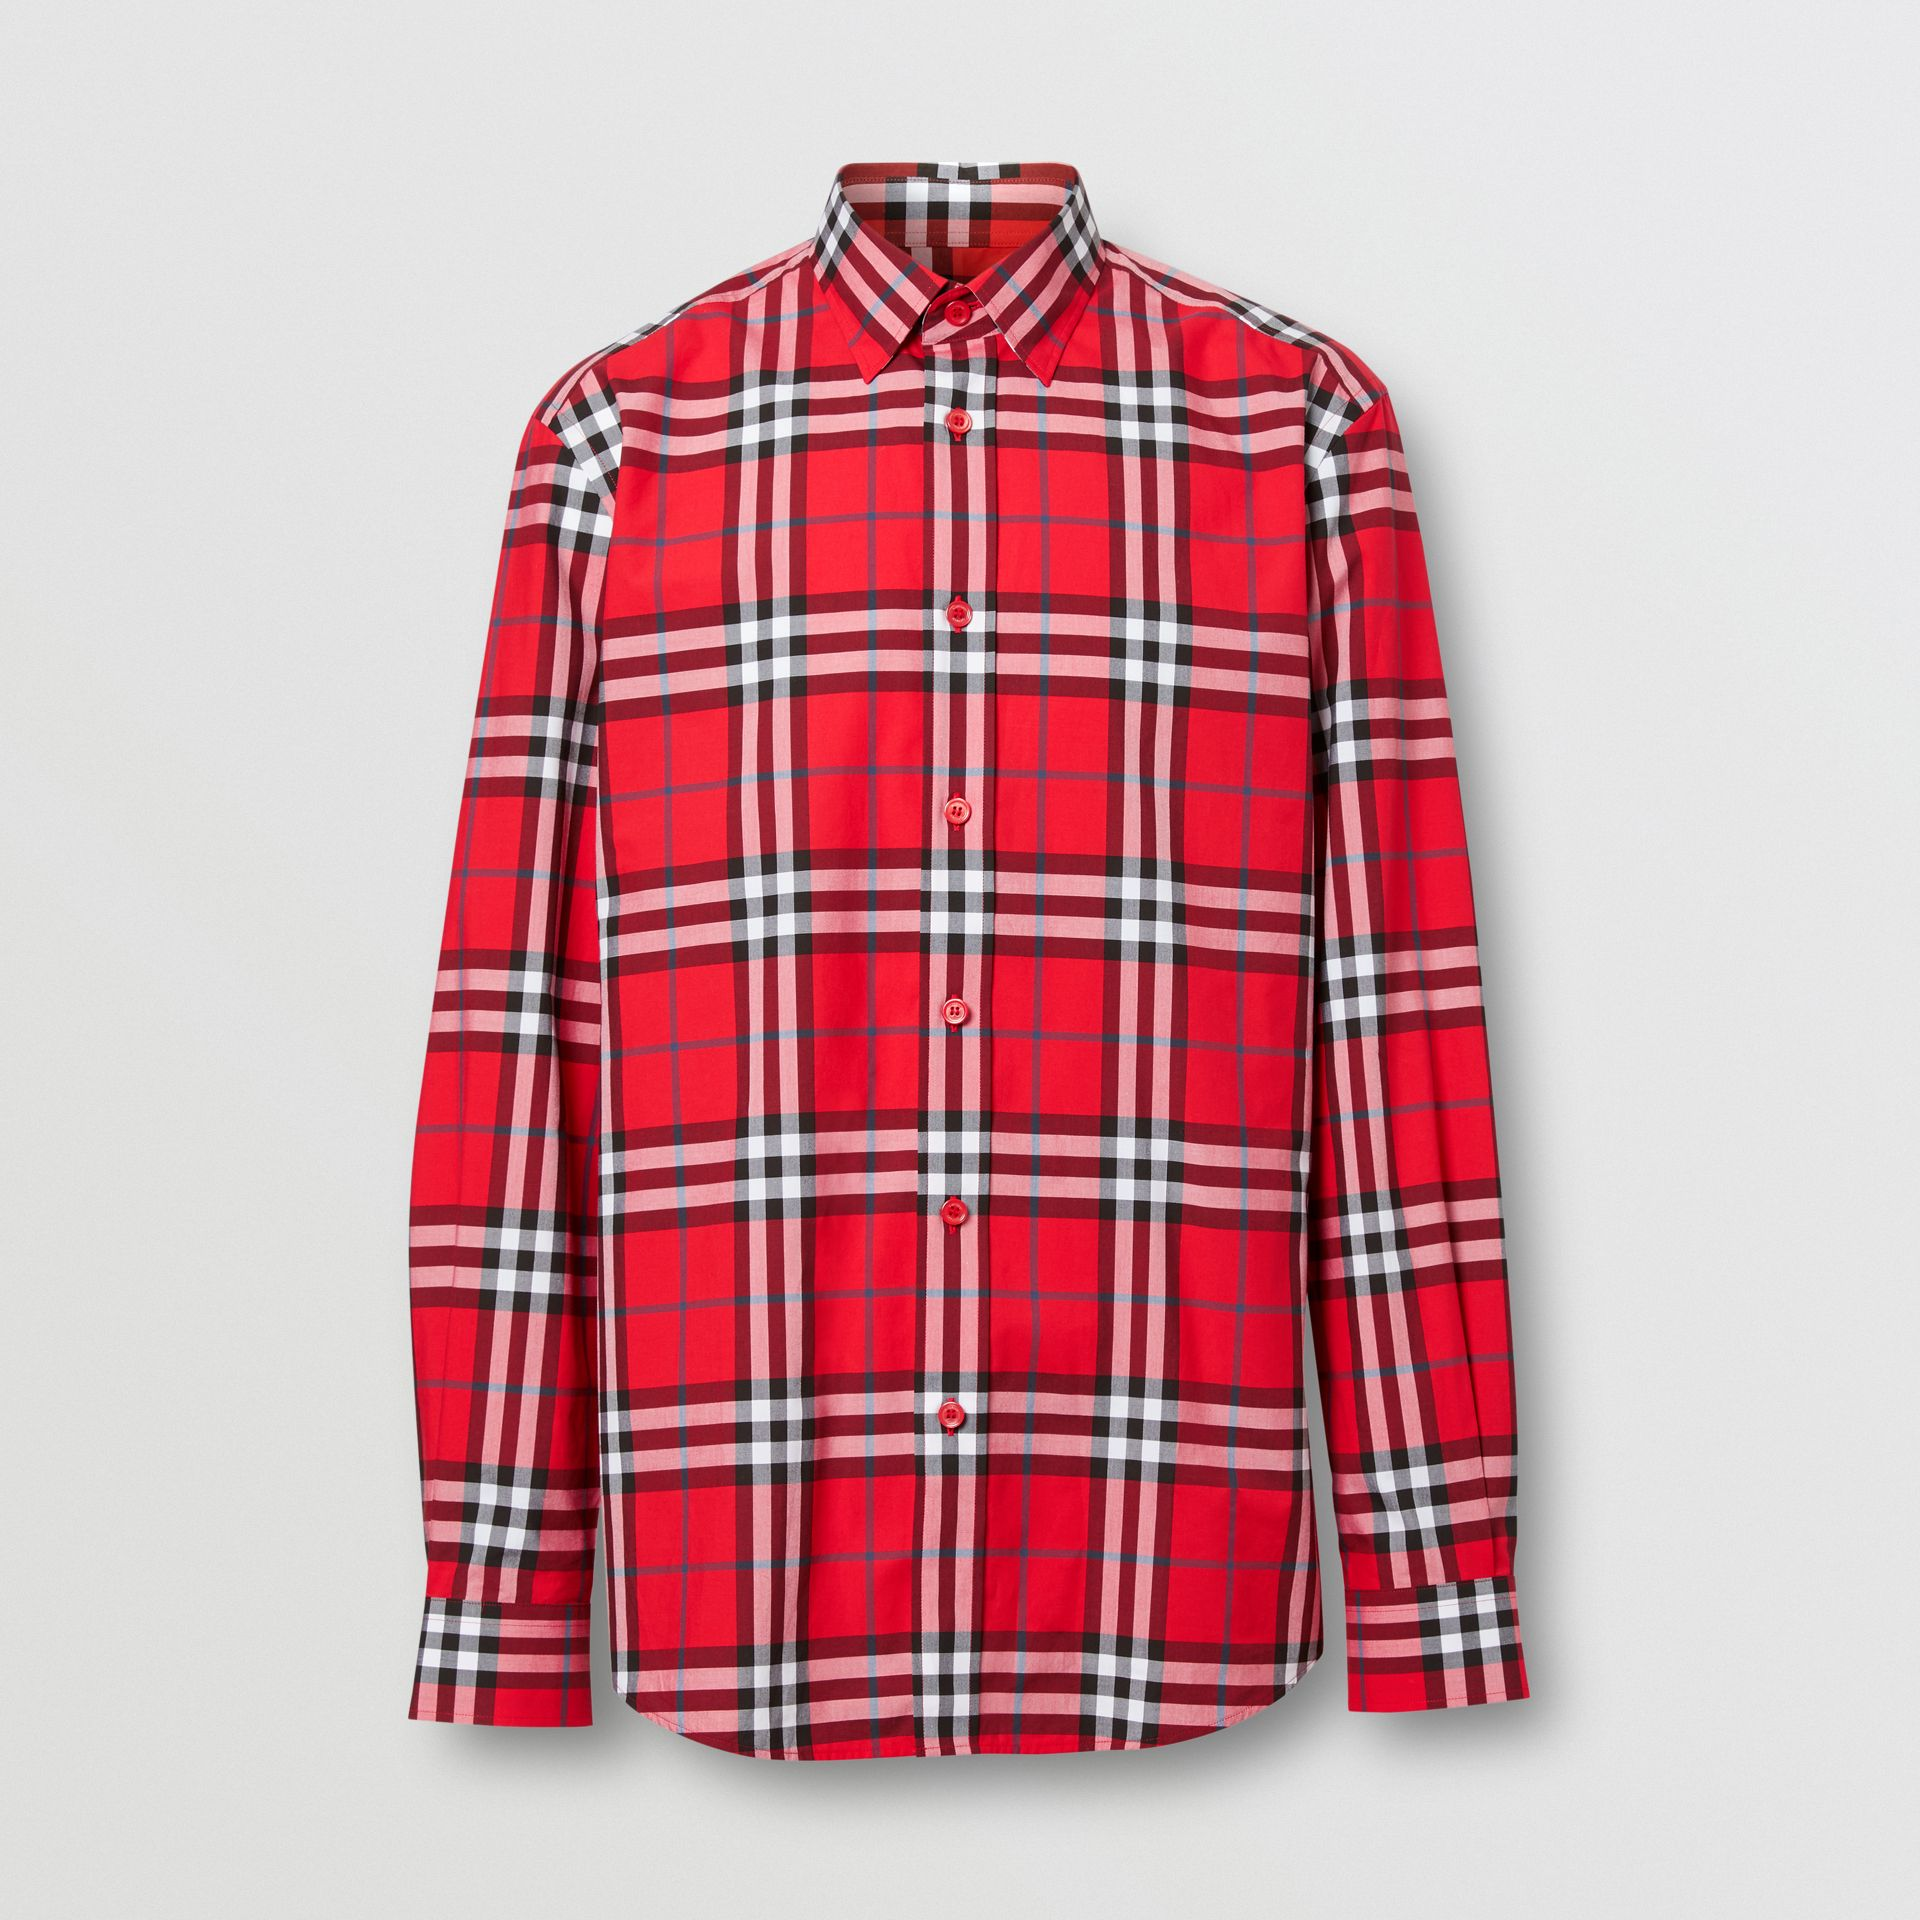 Vintage Check Cotton Poplin Shirt in Bright Red - Men | Burberry - gallery image 3